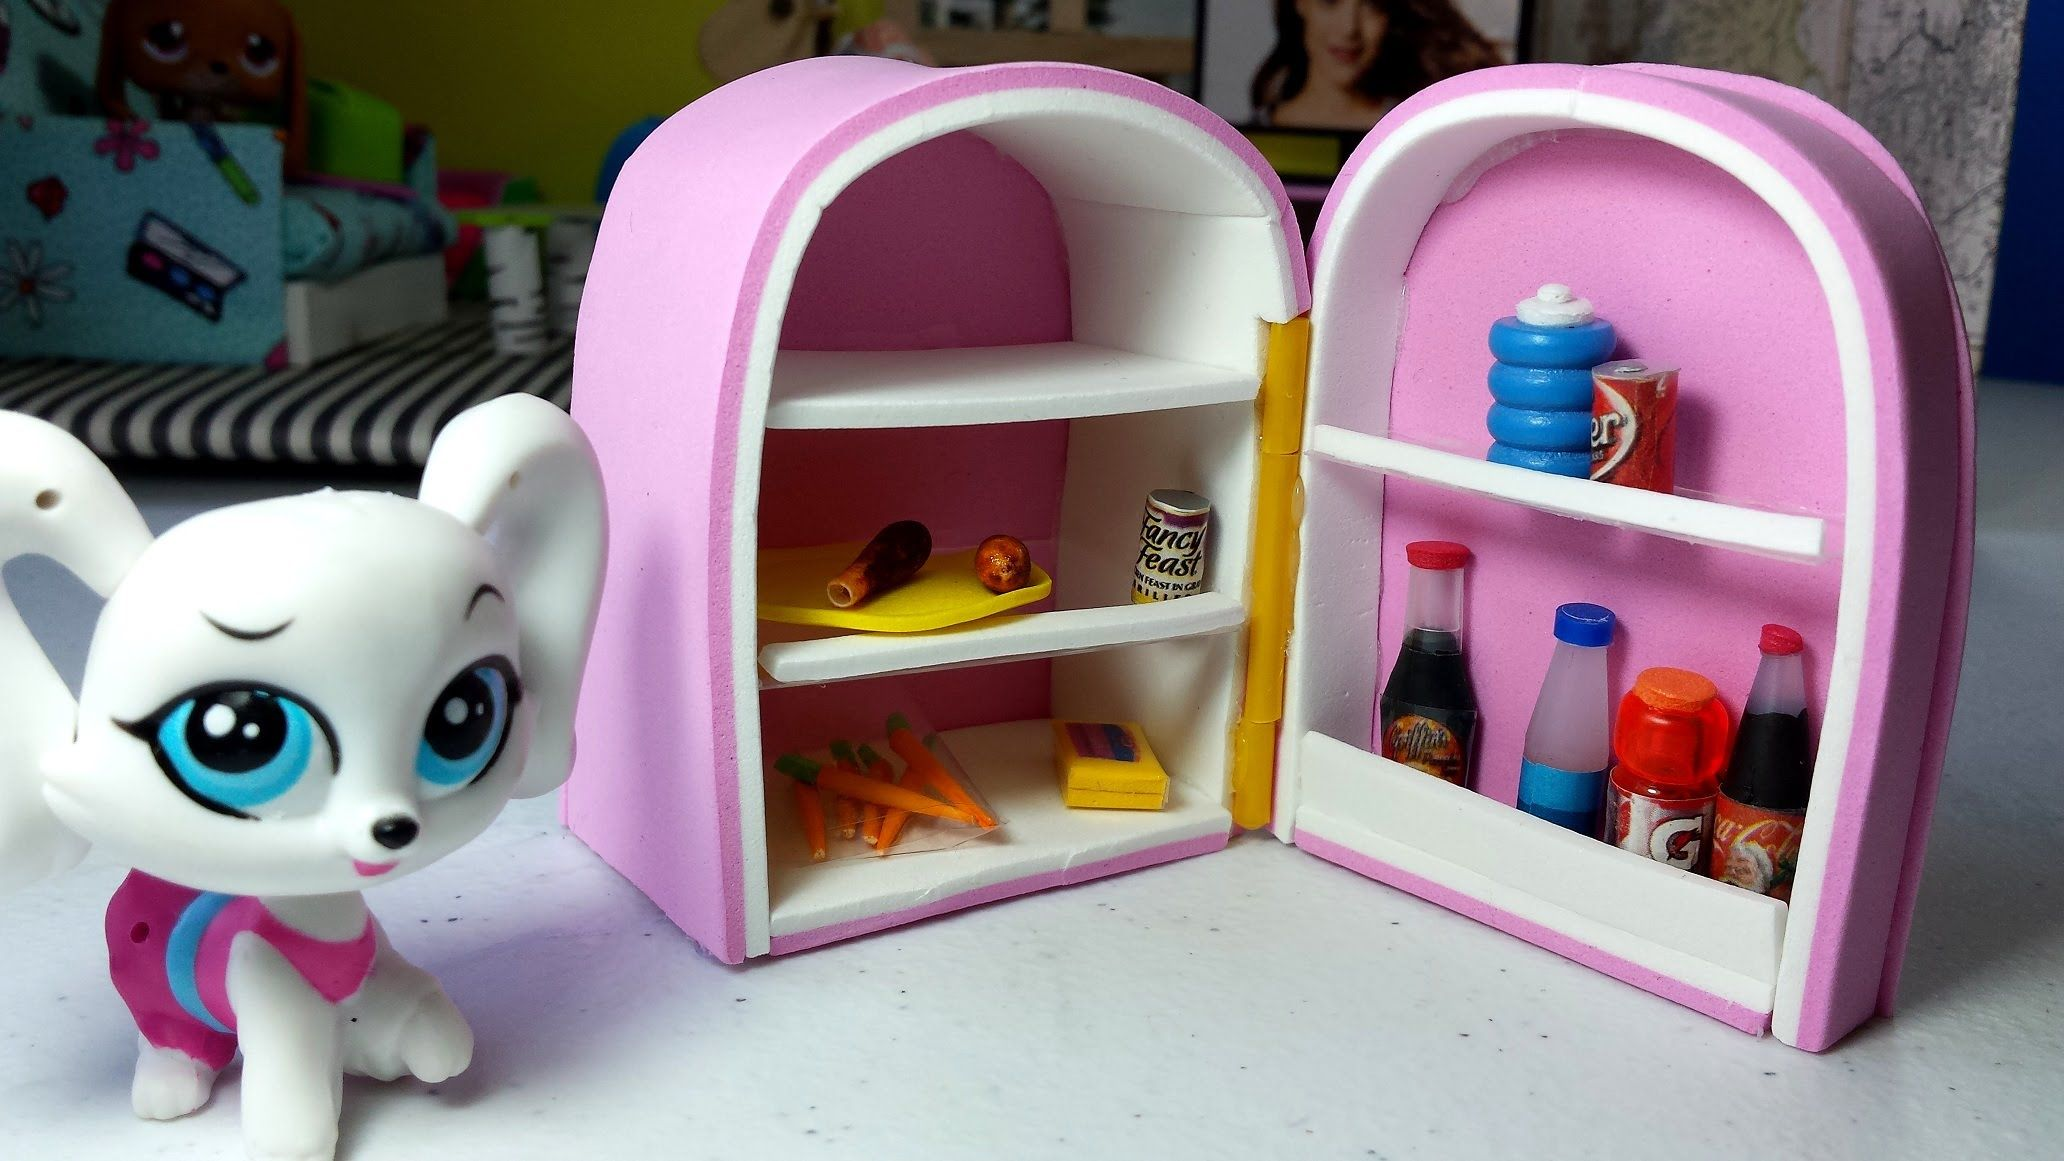 Diy Lps Fridge Doll How To Lps Crafts Lps Diy Accessories Diy Doll